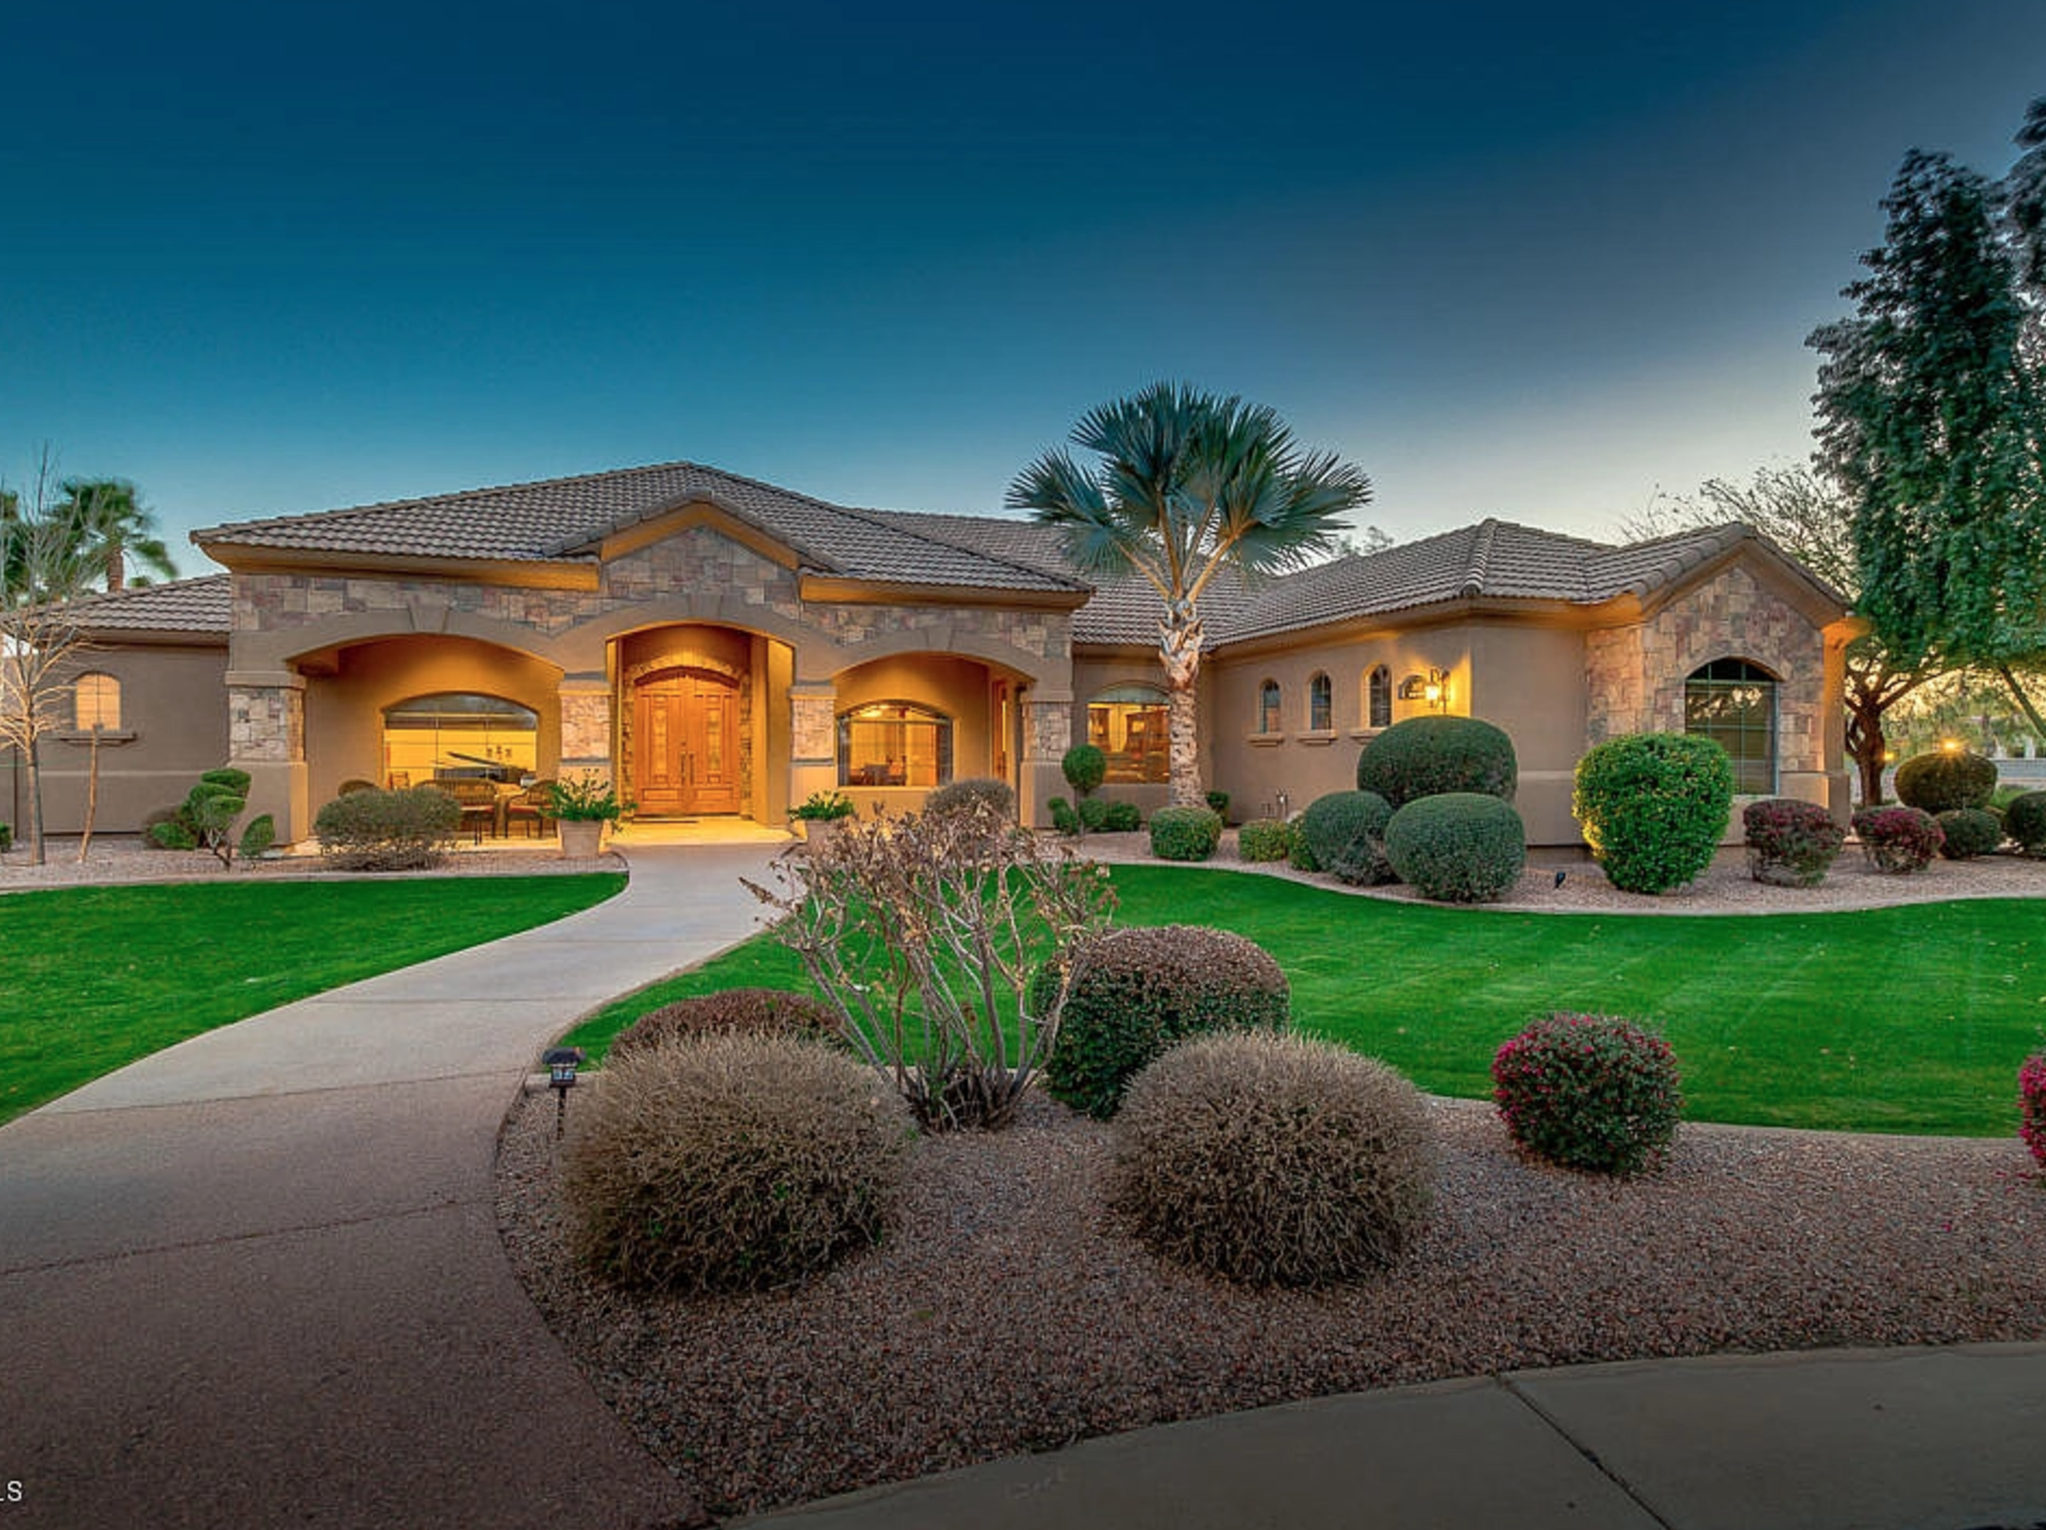 2683 E Nolan Place, Chandler - $689,900 - 3 Beds, 3 Baths, 3,781 Sf